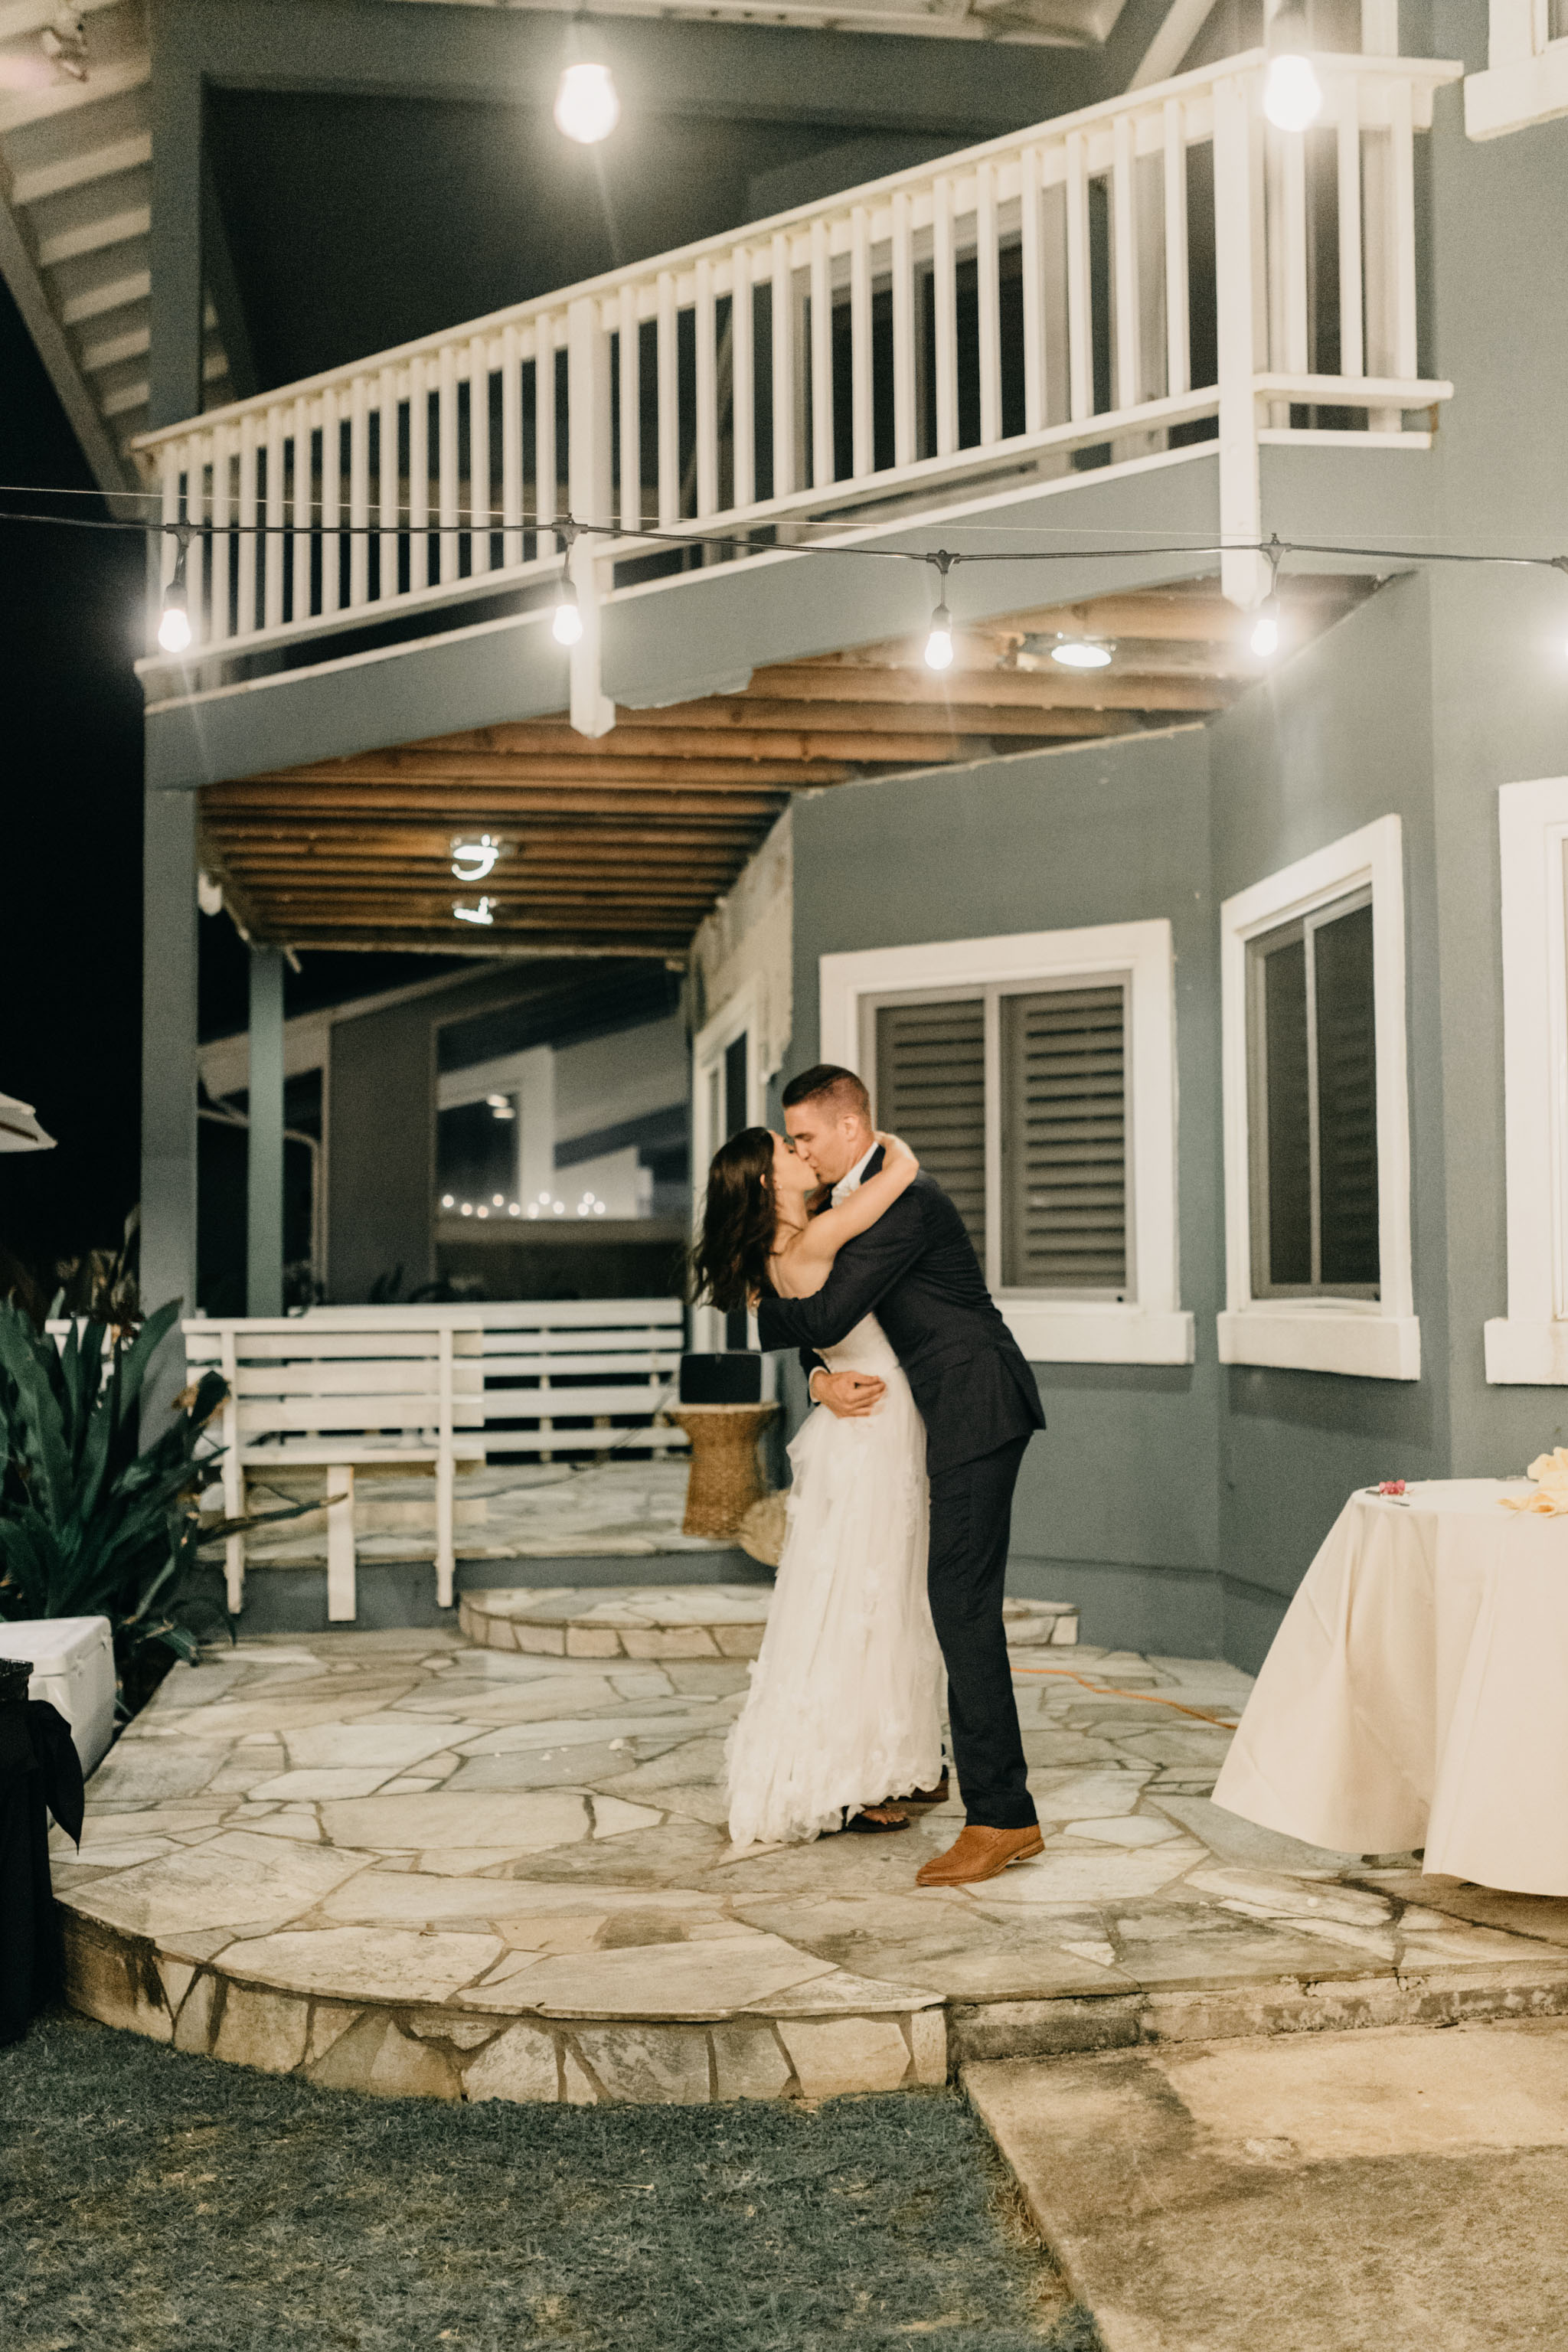 Bride and groom first dance- Laie Point Backyard Wedding By Hawaii Wedding Photographer Desiree Leilani